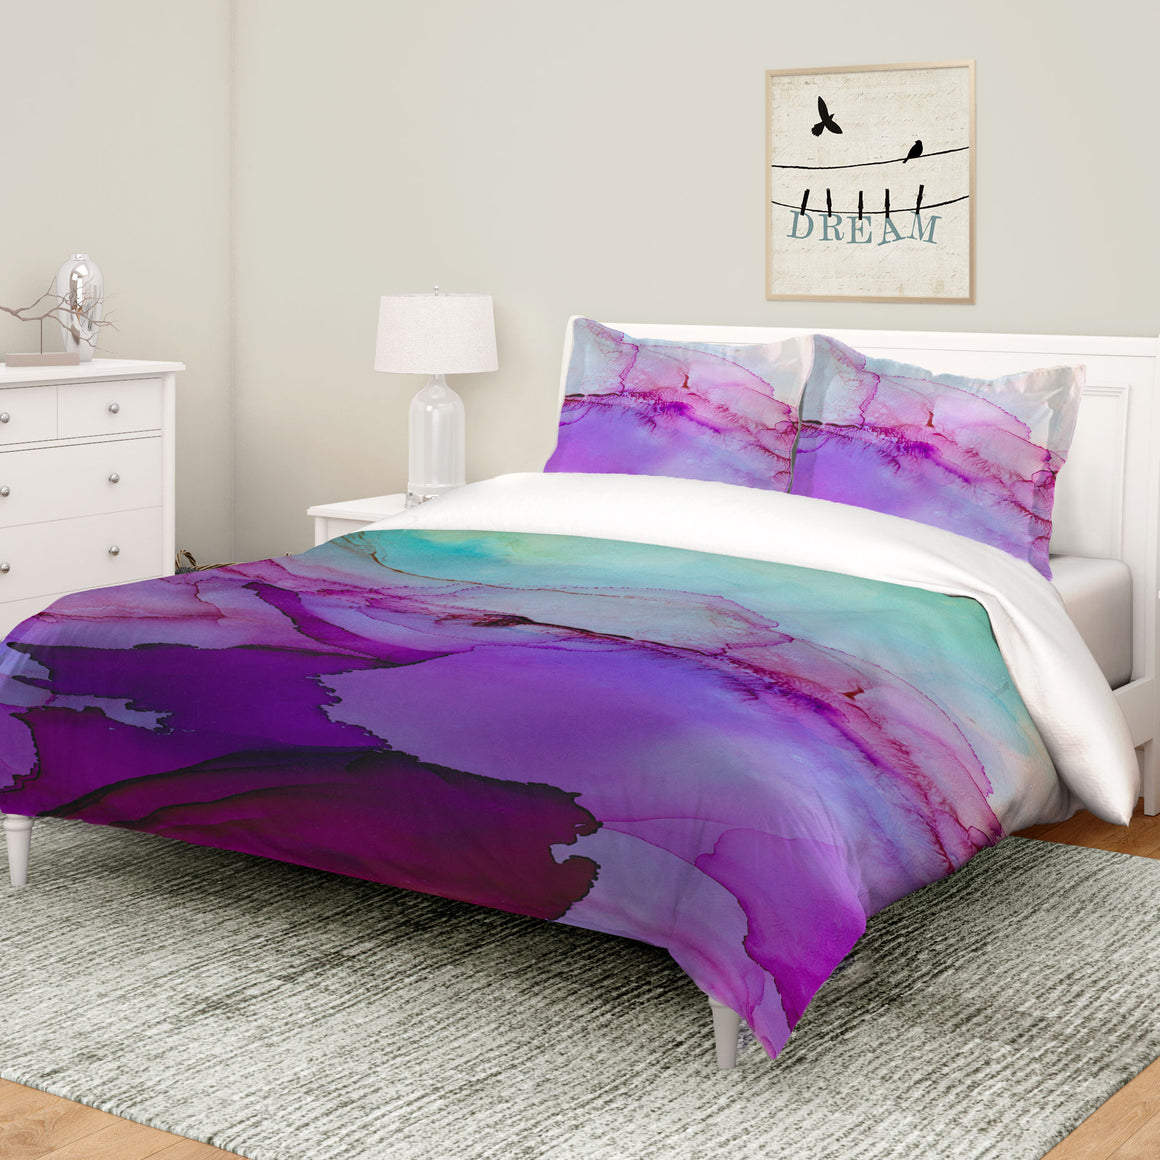 Luminescent Jewel Tones Comforter